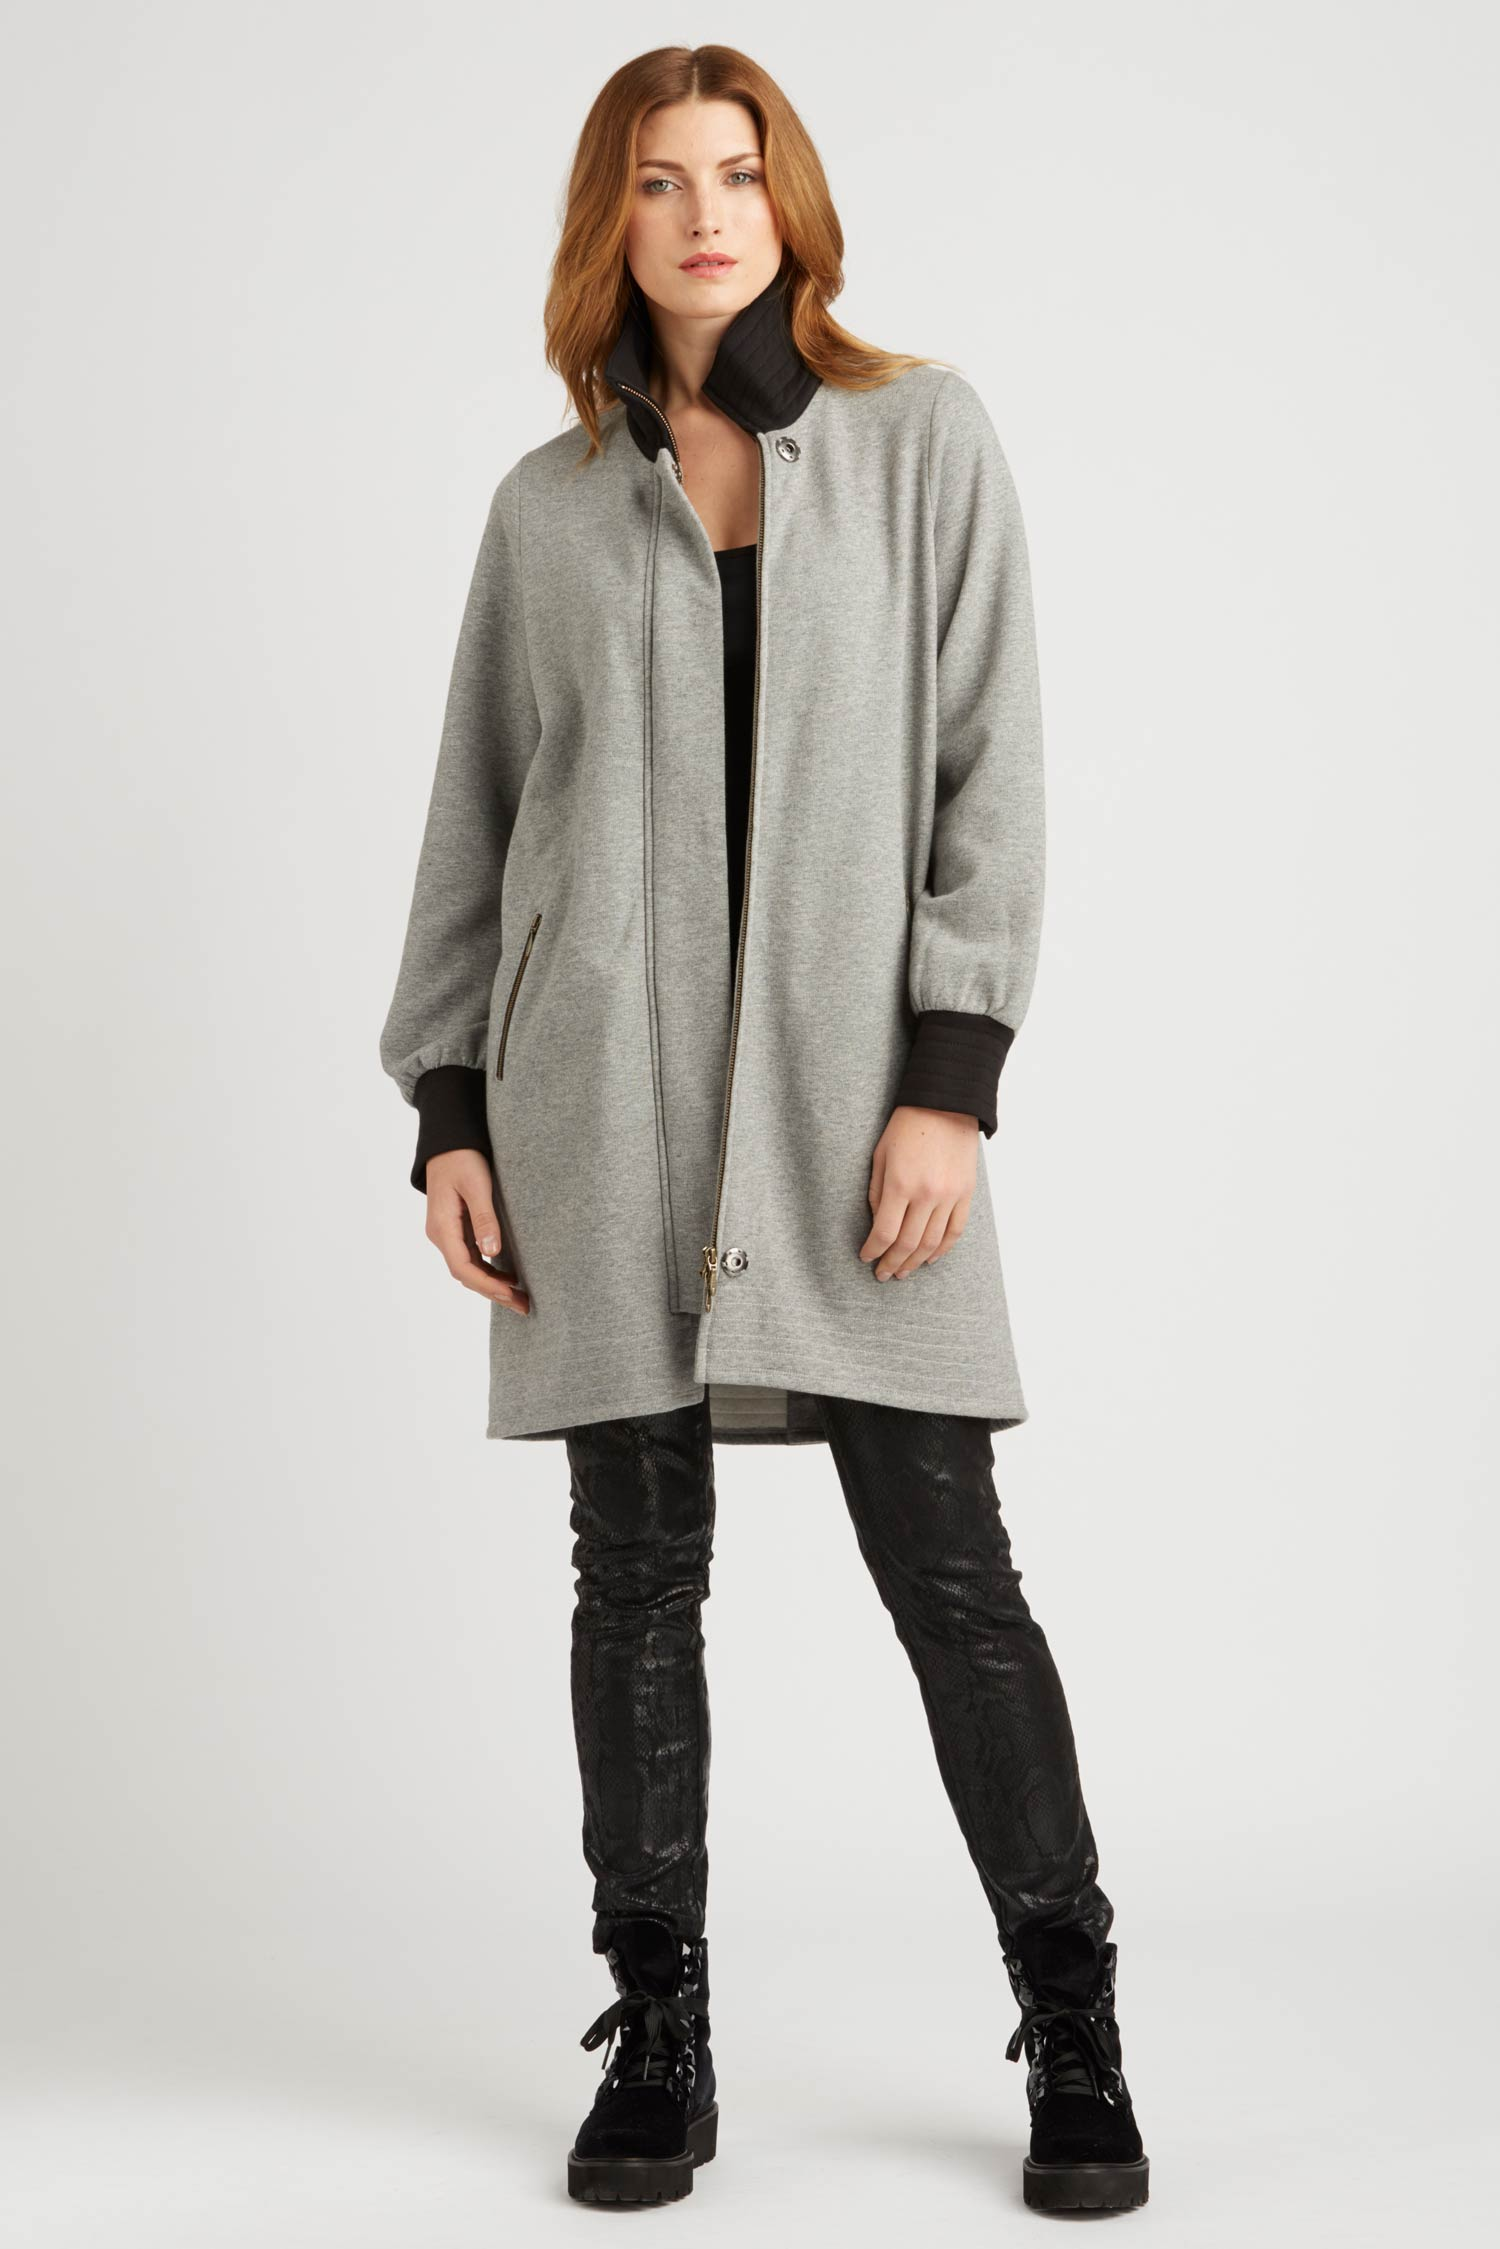 Womens Fleece Bomber Coat | Gray | Organic Cotton Clothing